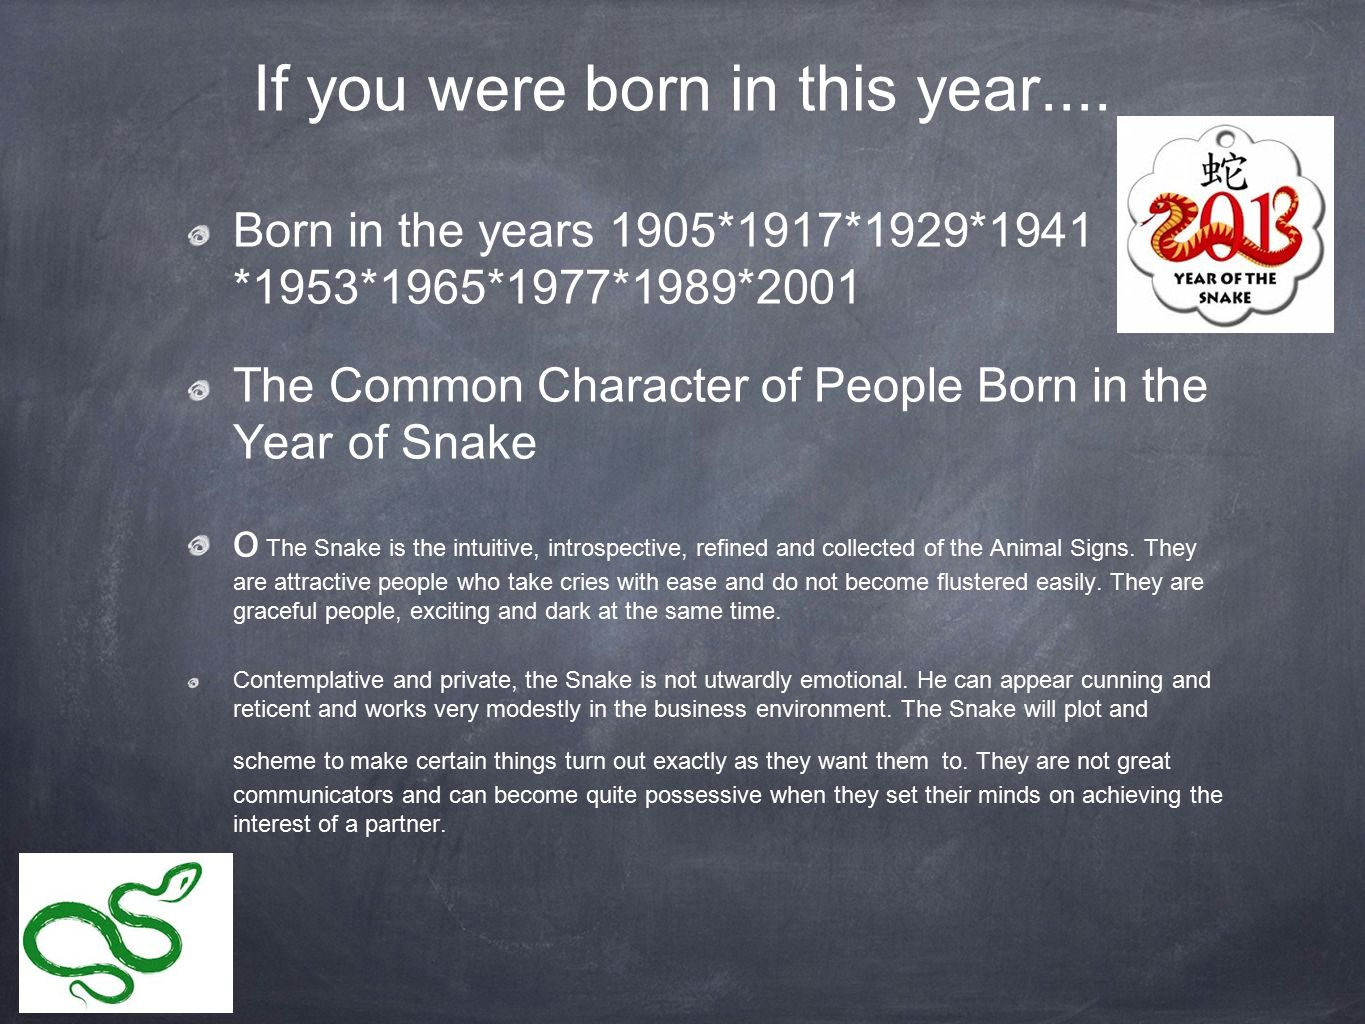 if you were born in this year - Chinese New Year 1989